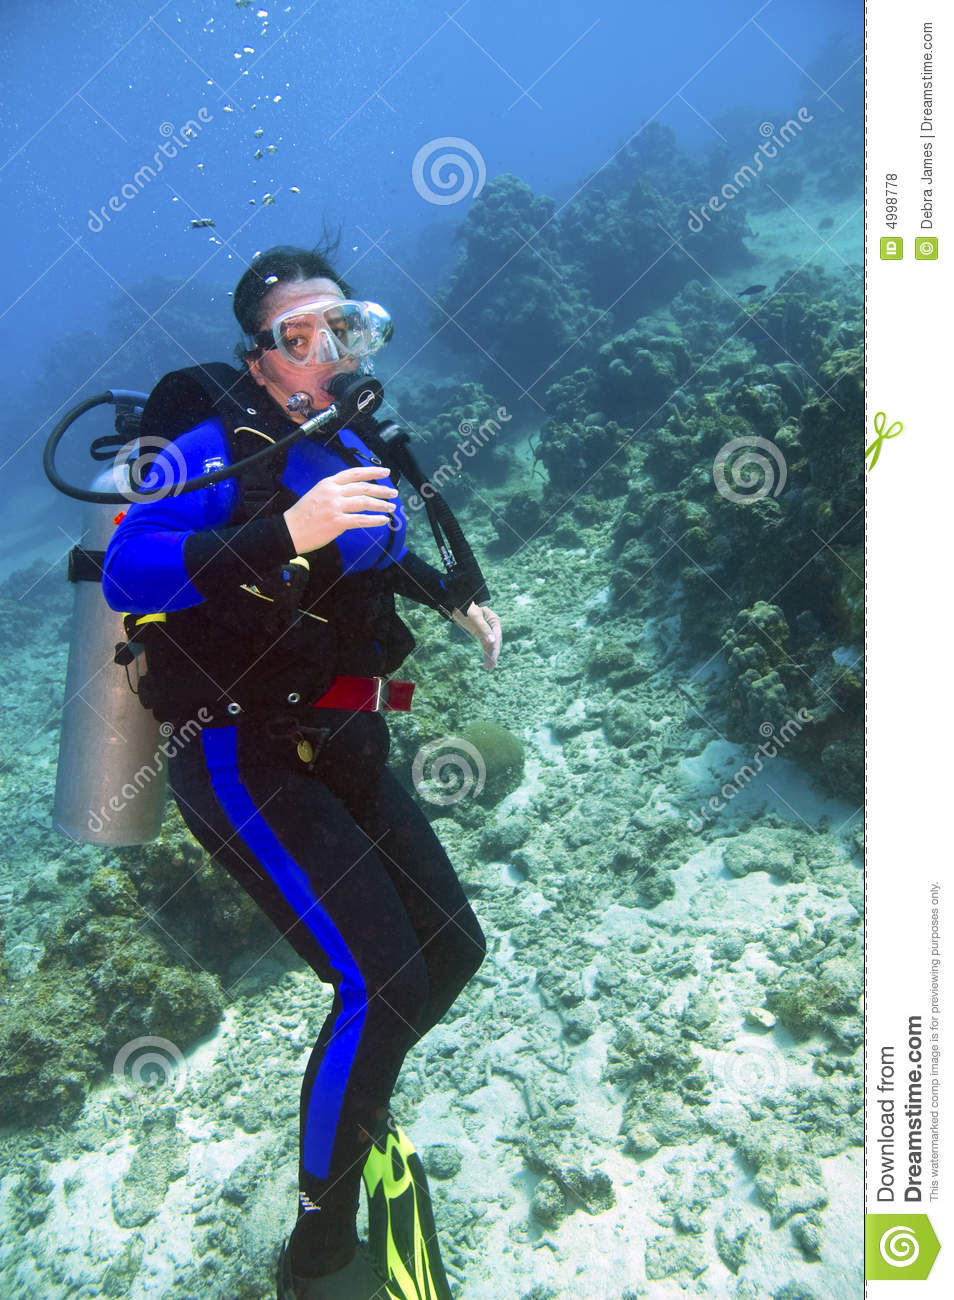 Female Scuba Diver Royalty Free Stock Photos Image 4998778